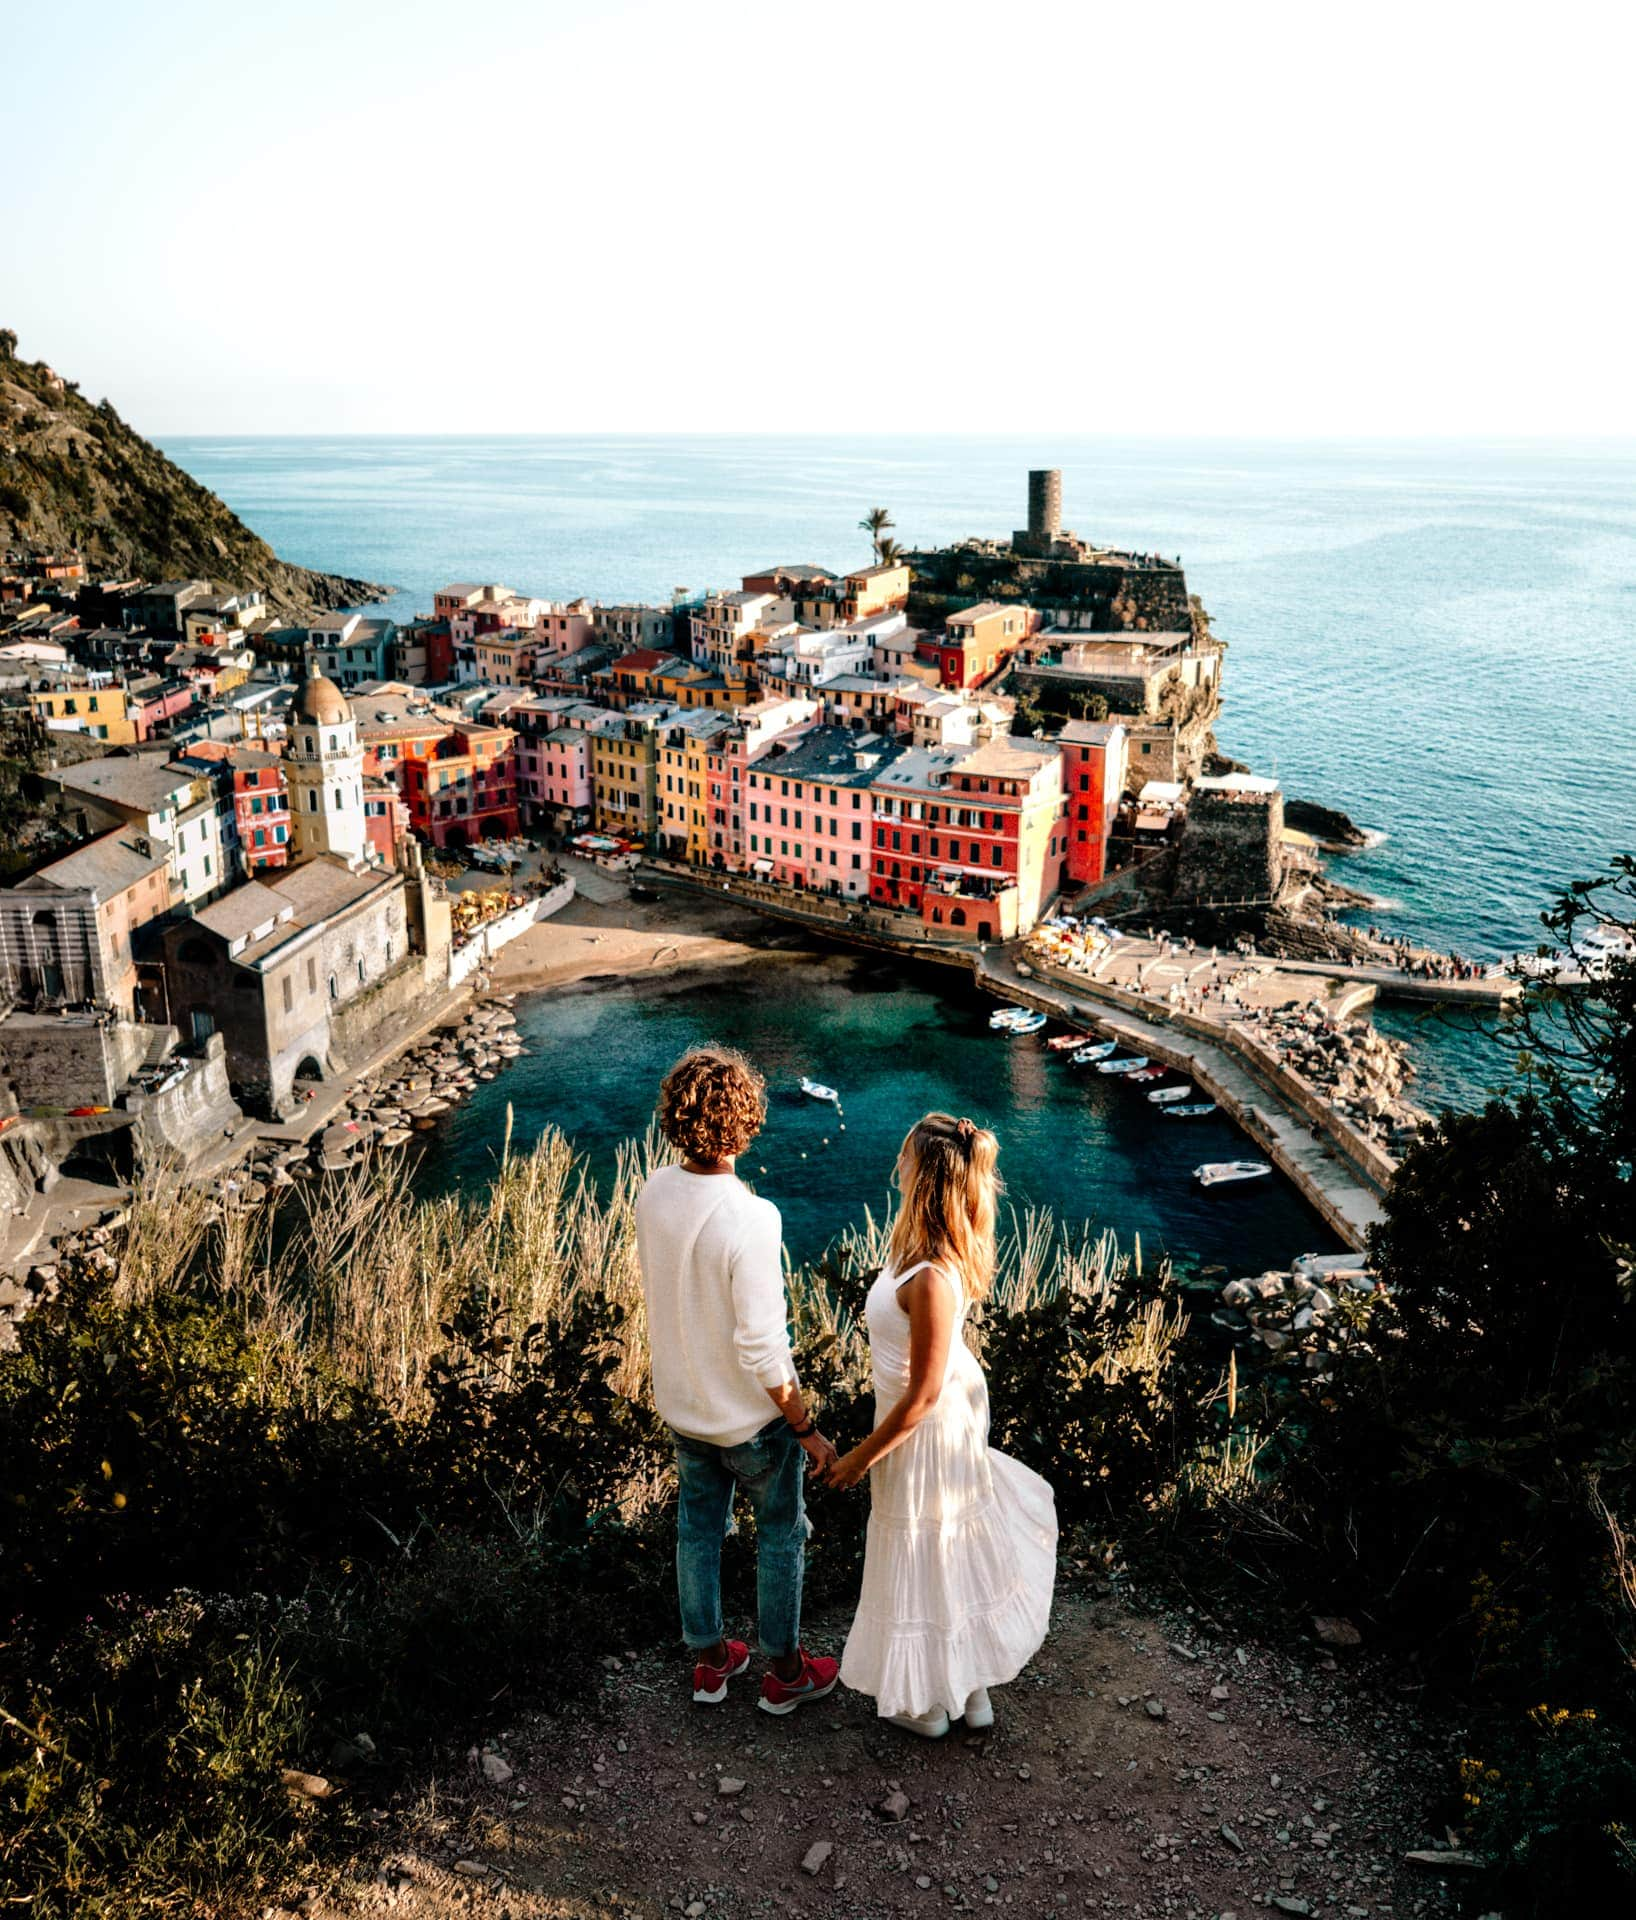 Vernazza Cinque Terre italy viewpoint